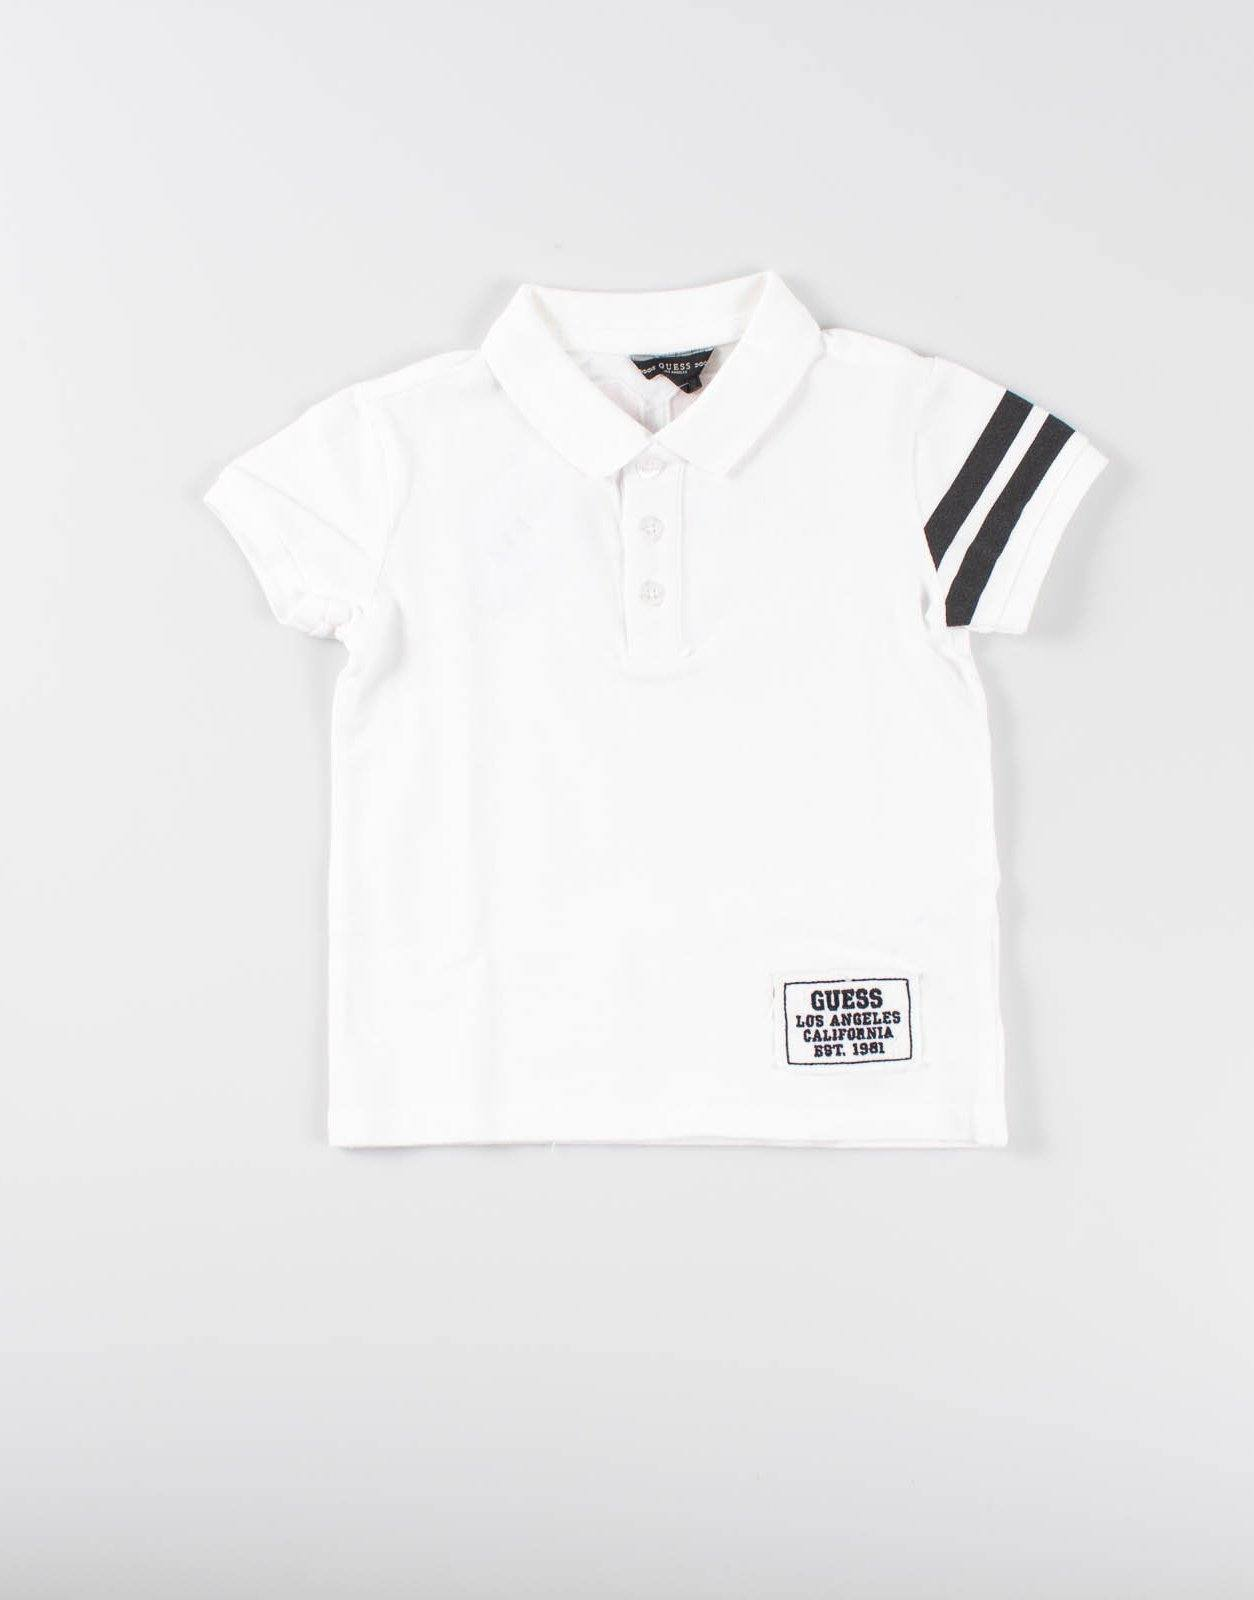 810b64e9 Guess Boys 1981 Polo Shirt | Subwear